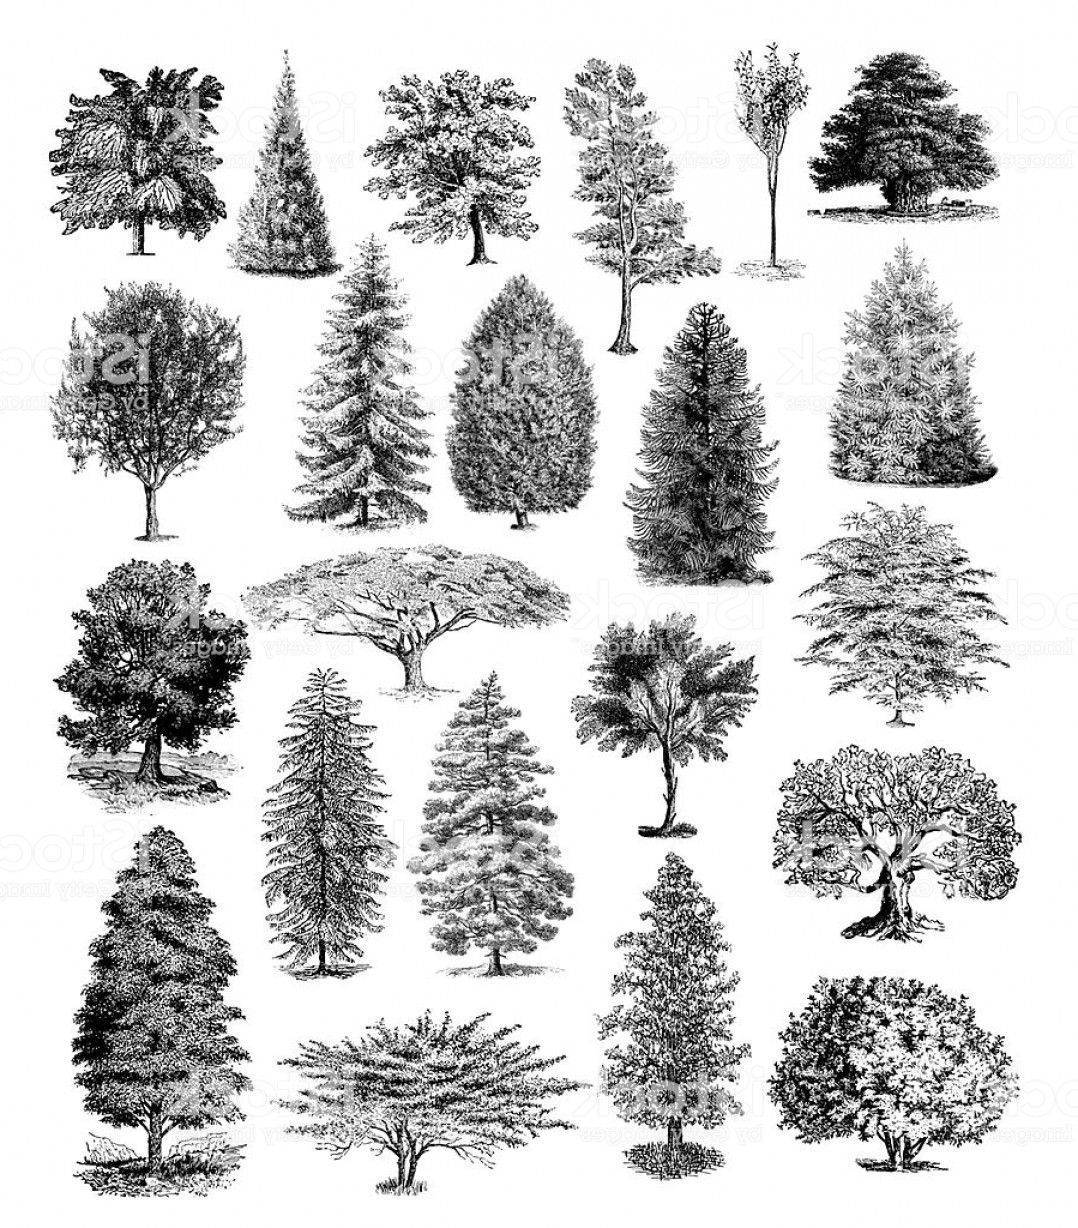 Tree illustrations clipart clip art royalty free Forest Tree Illustrations Vintage Nature Clipart Gm | SOIDERGI clip art royalty free